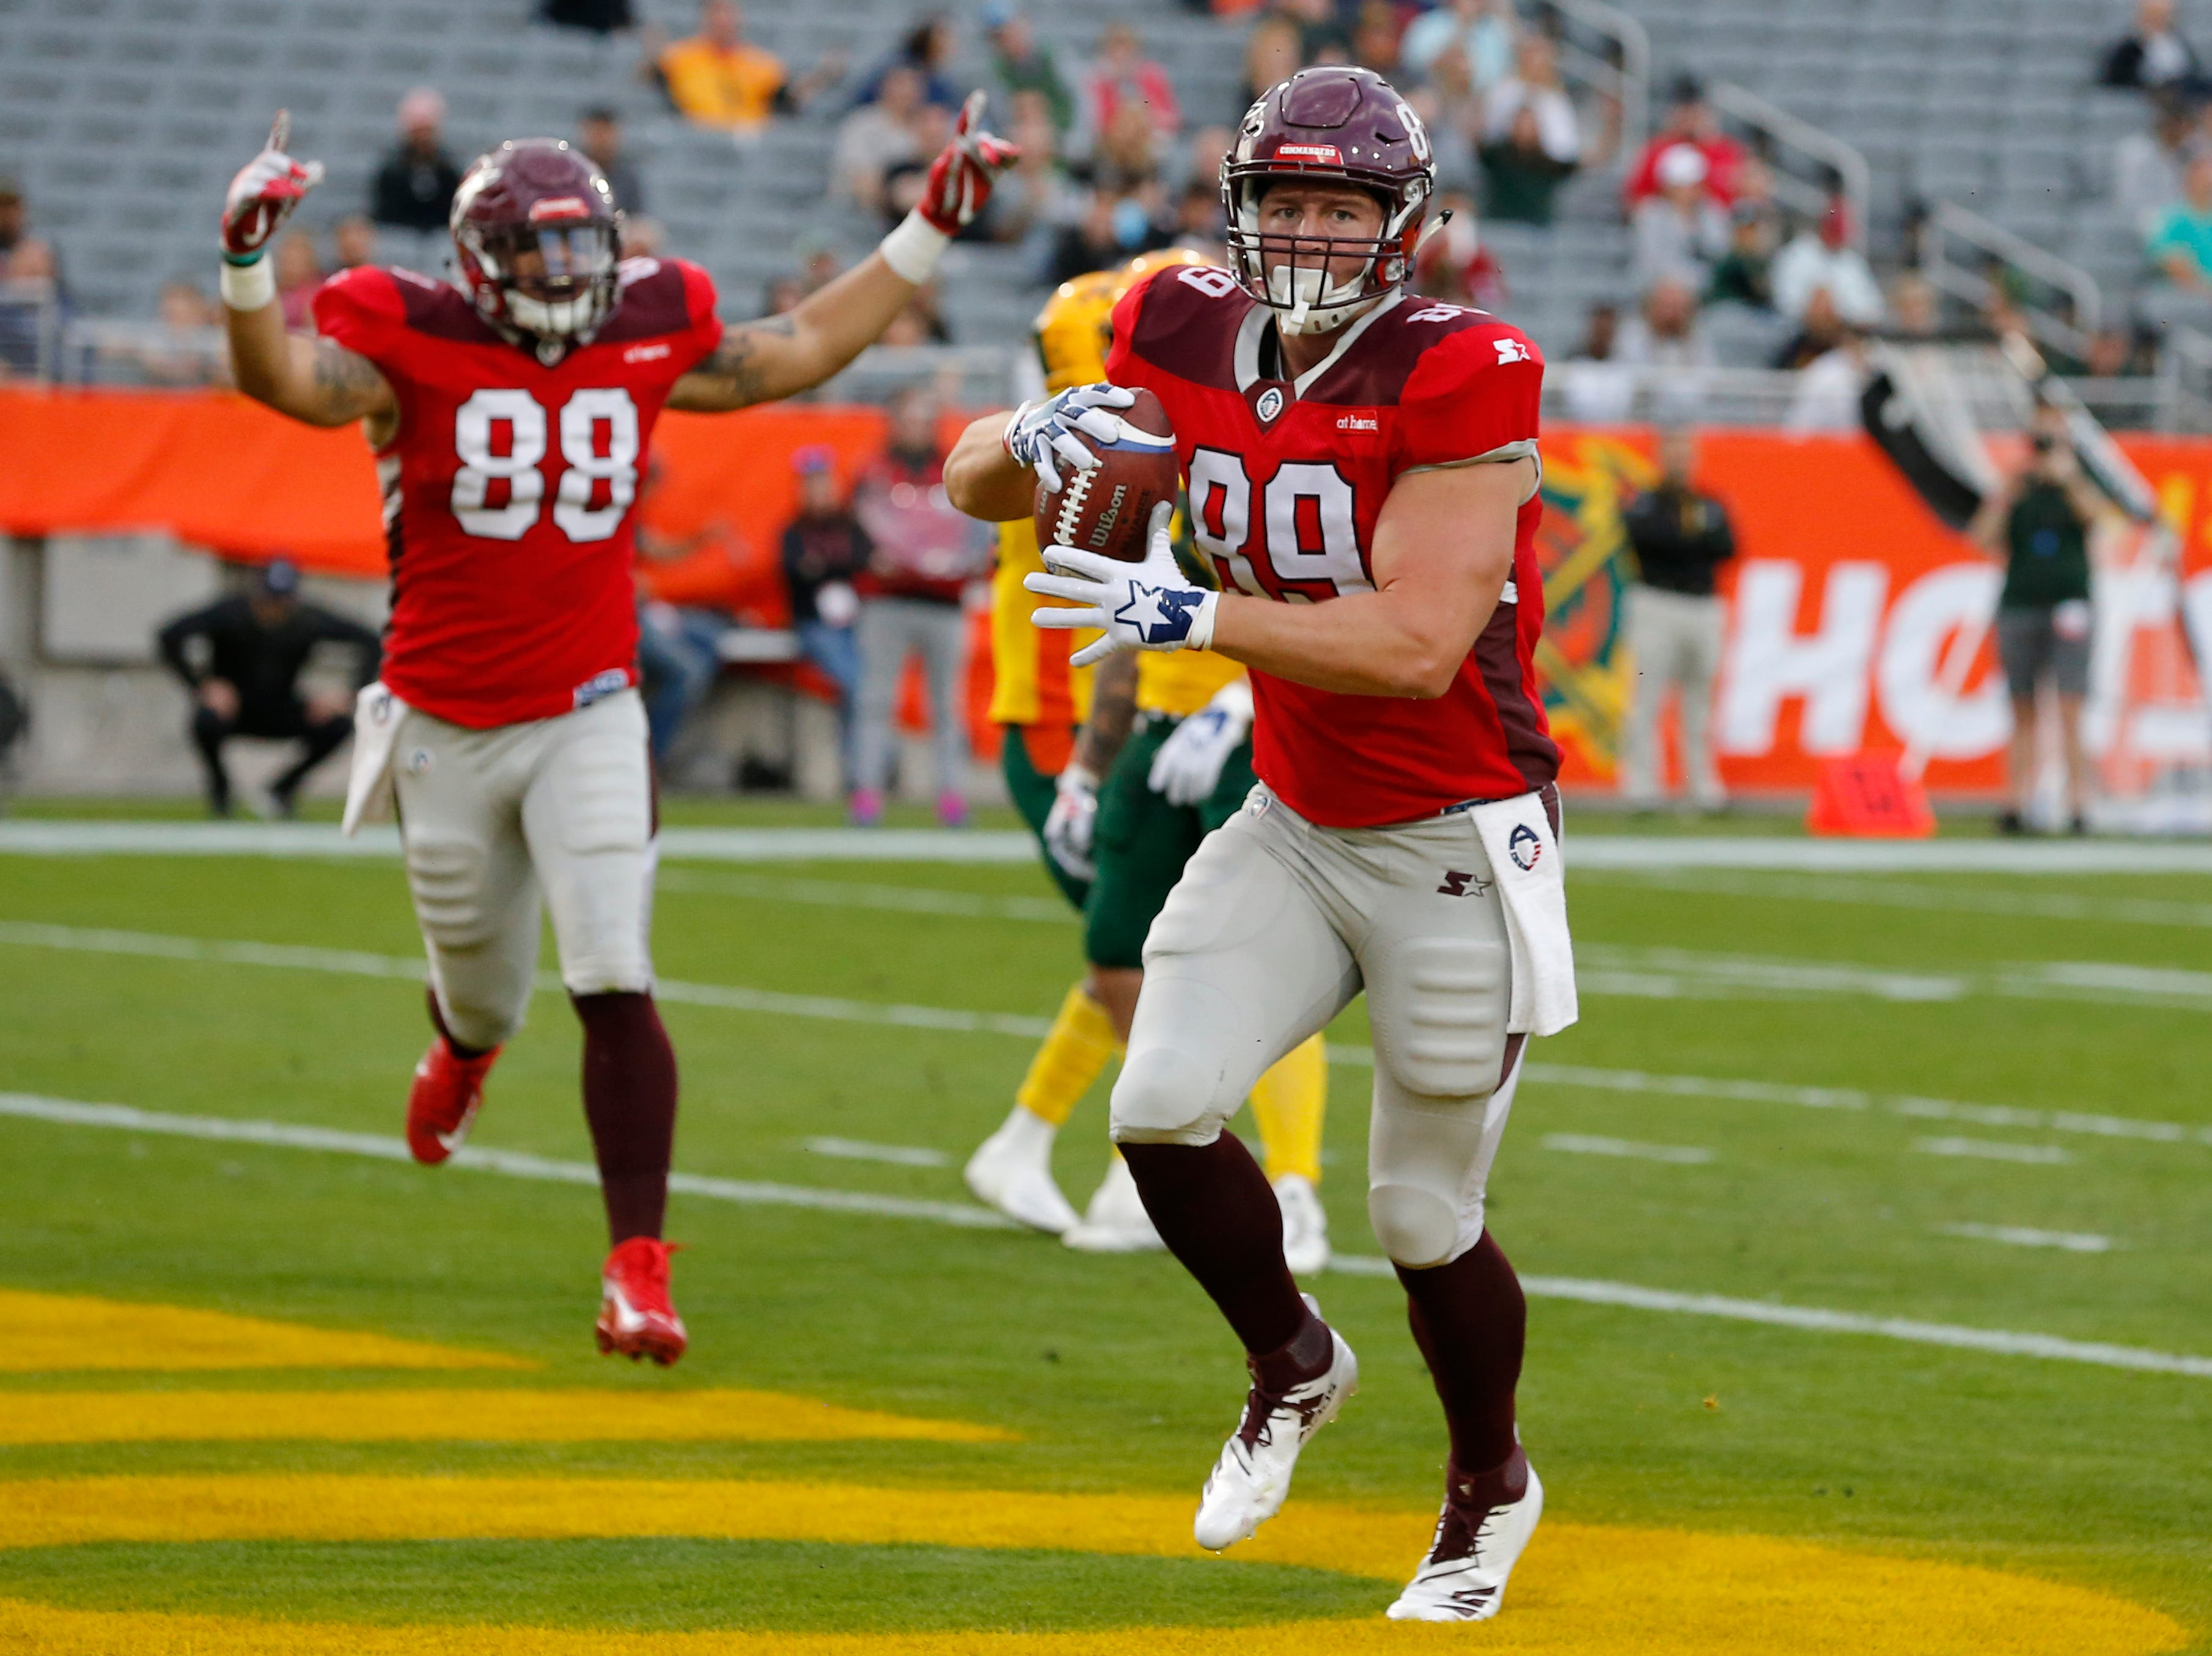 San Antonio Commanders tight end Stehly Reden (89) celebrates after scoring a touchdown against the Arizona Hotshots in the first half during an AAF football game, Sunday, March 10, 2019, at Sun Devil Stadium in Phoenix. (AP Photo/Rick Scuteri)